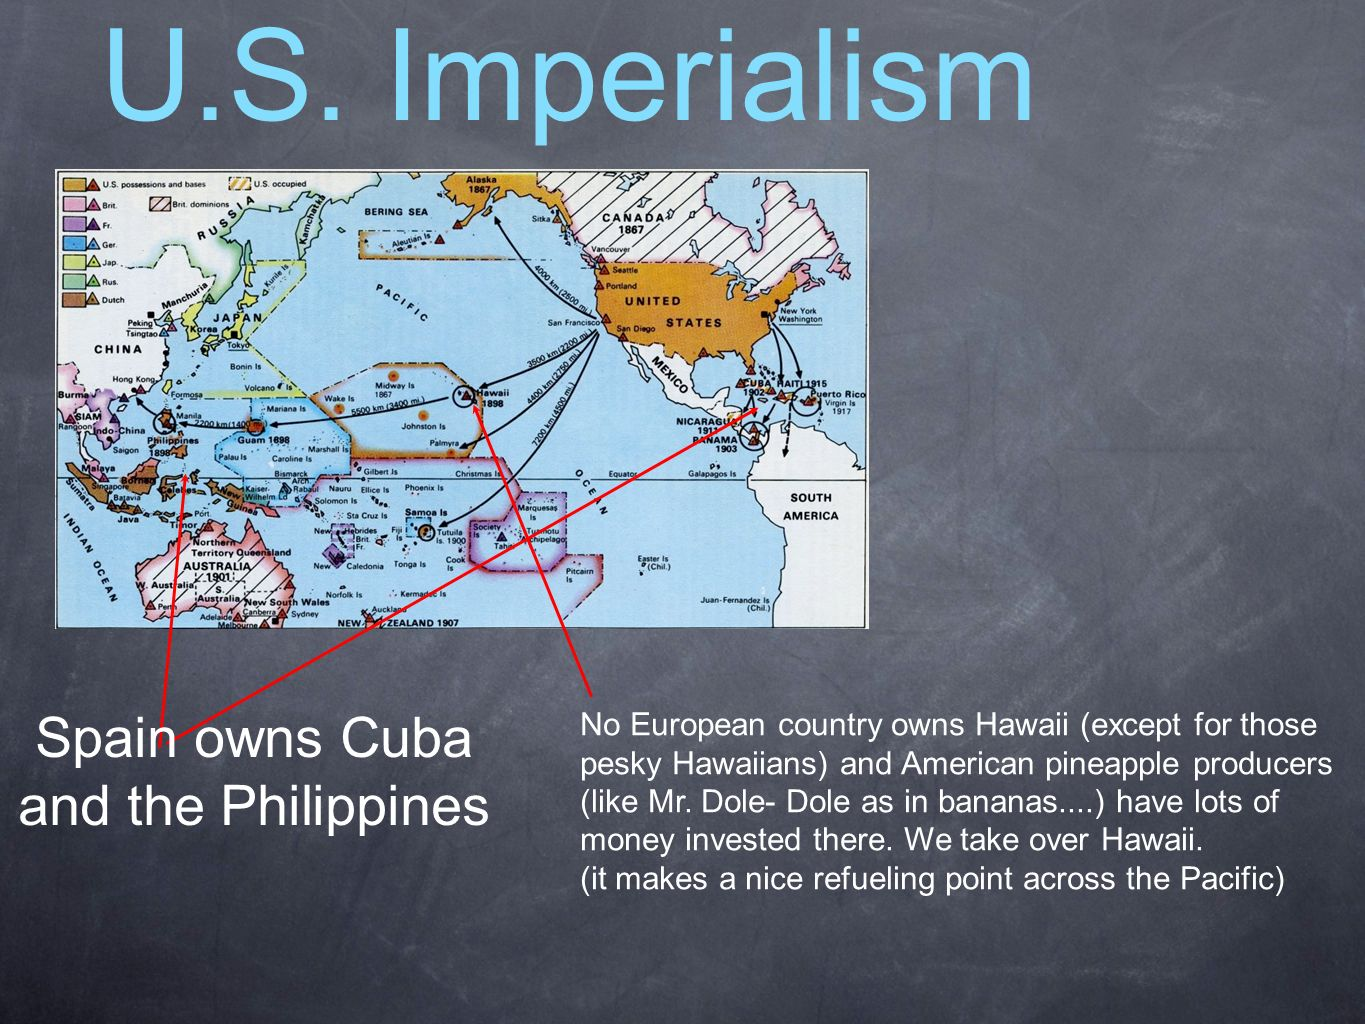 Spain owns Cuba and the Philippines